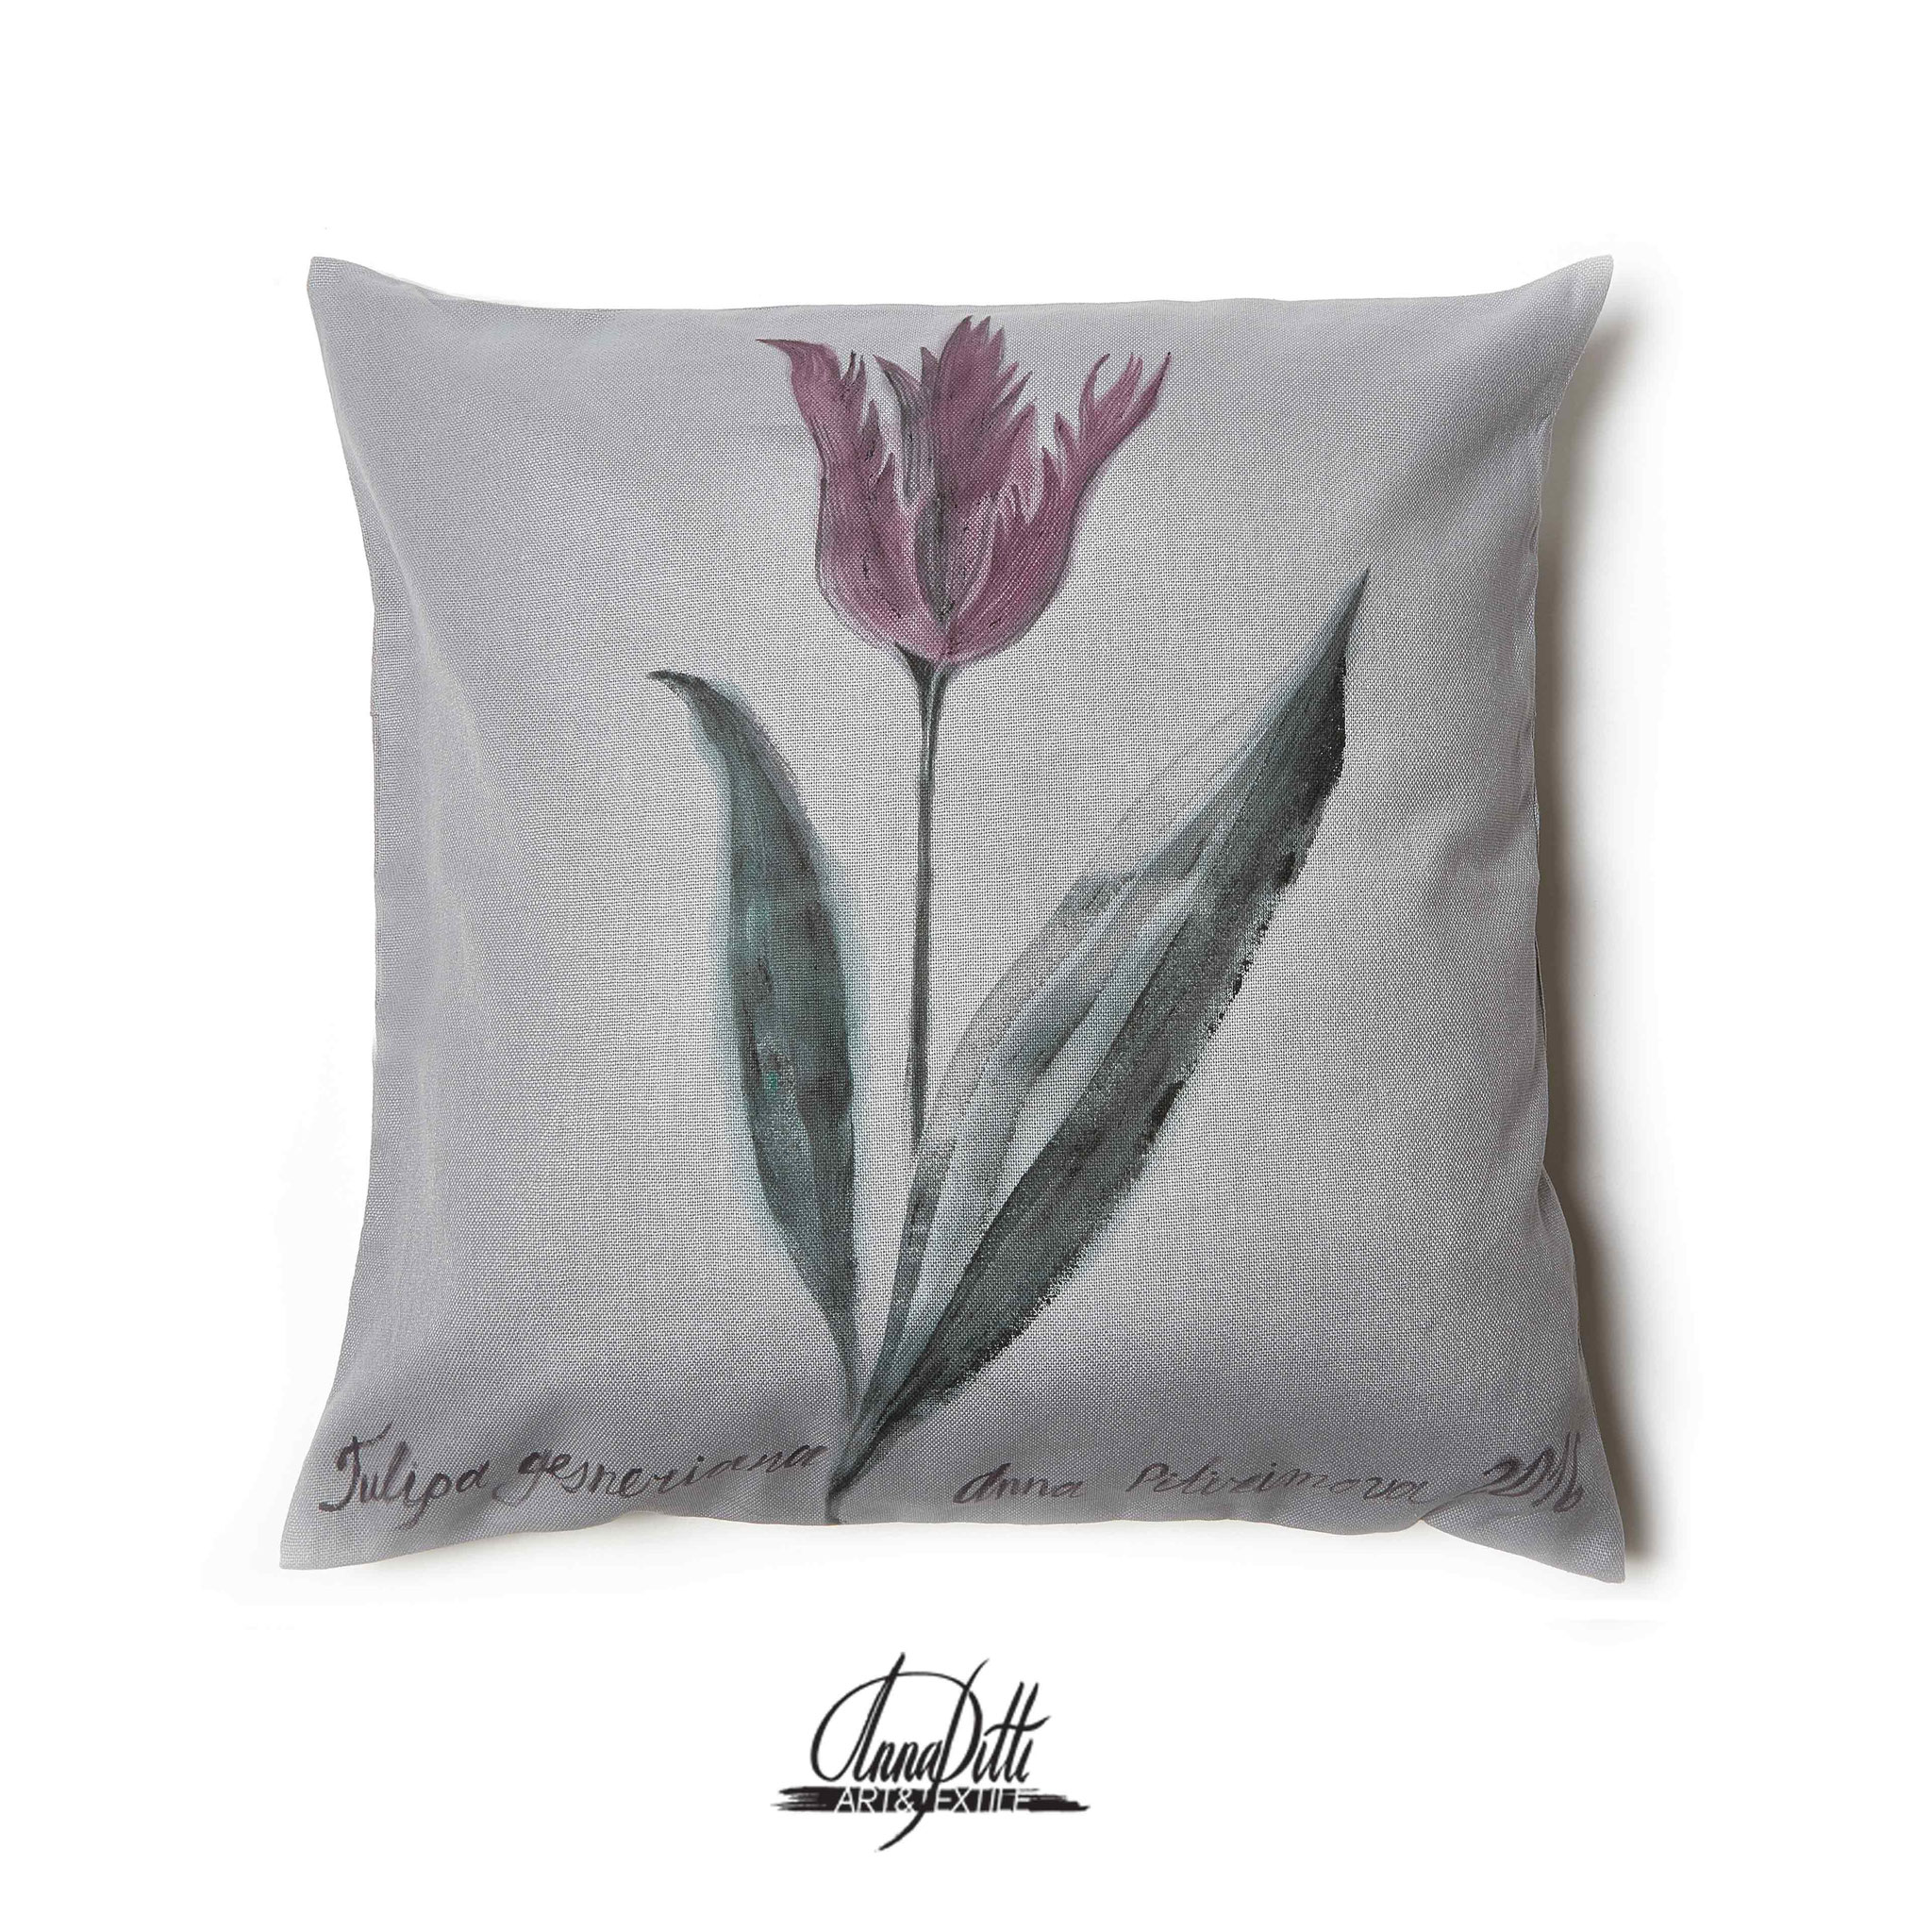 Tulip. Provence collection. 50×50cm. Cotton 100%. Avaliable in different sizes and colors